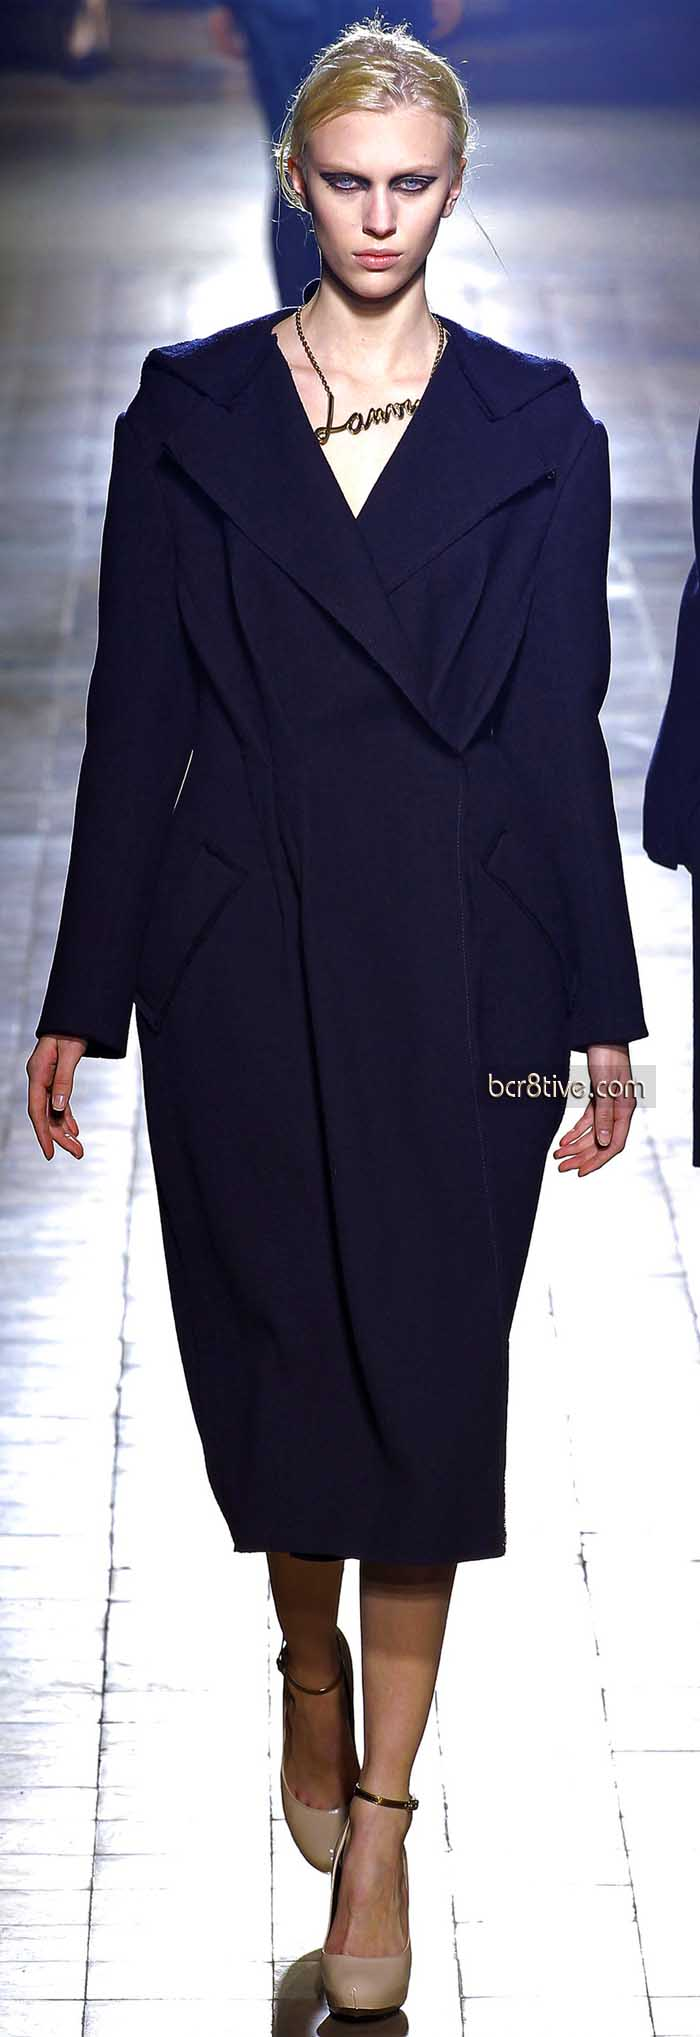 Lanvin Fall Winter 2013-14